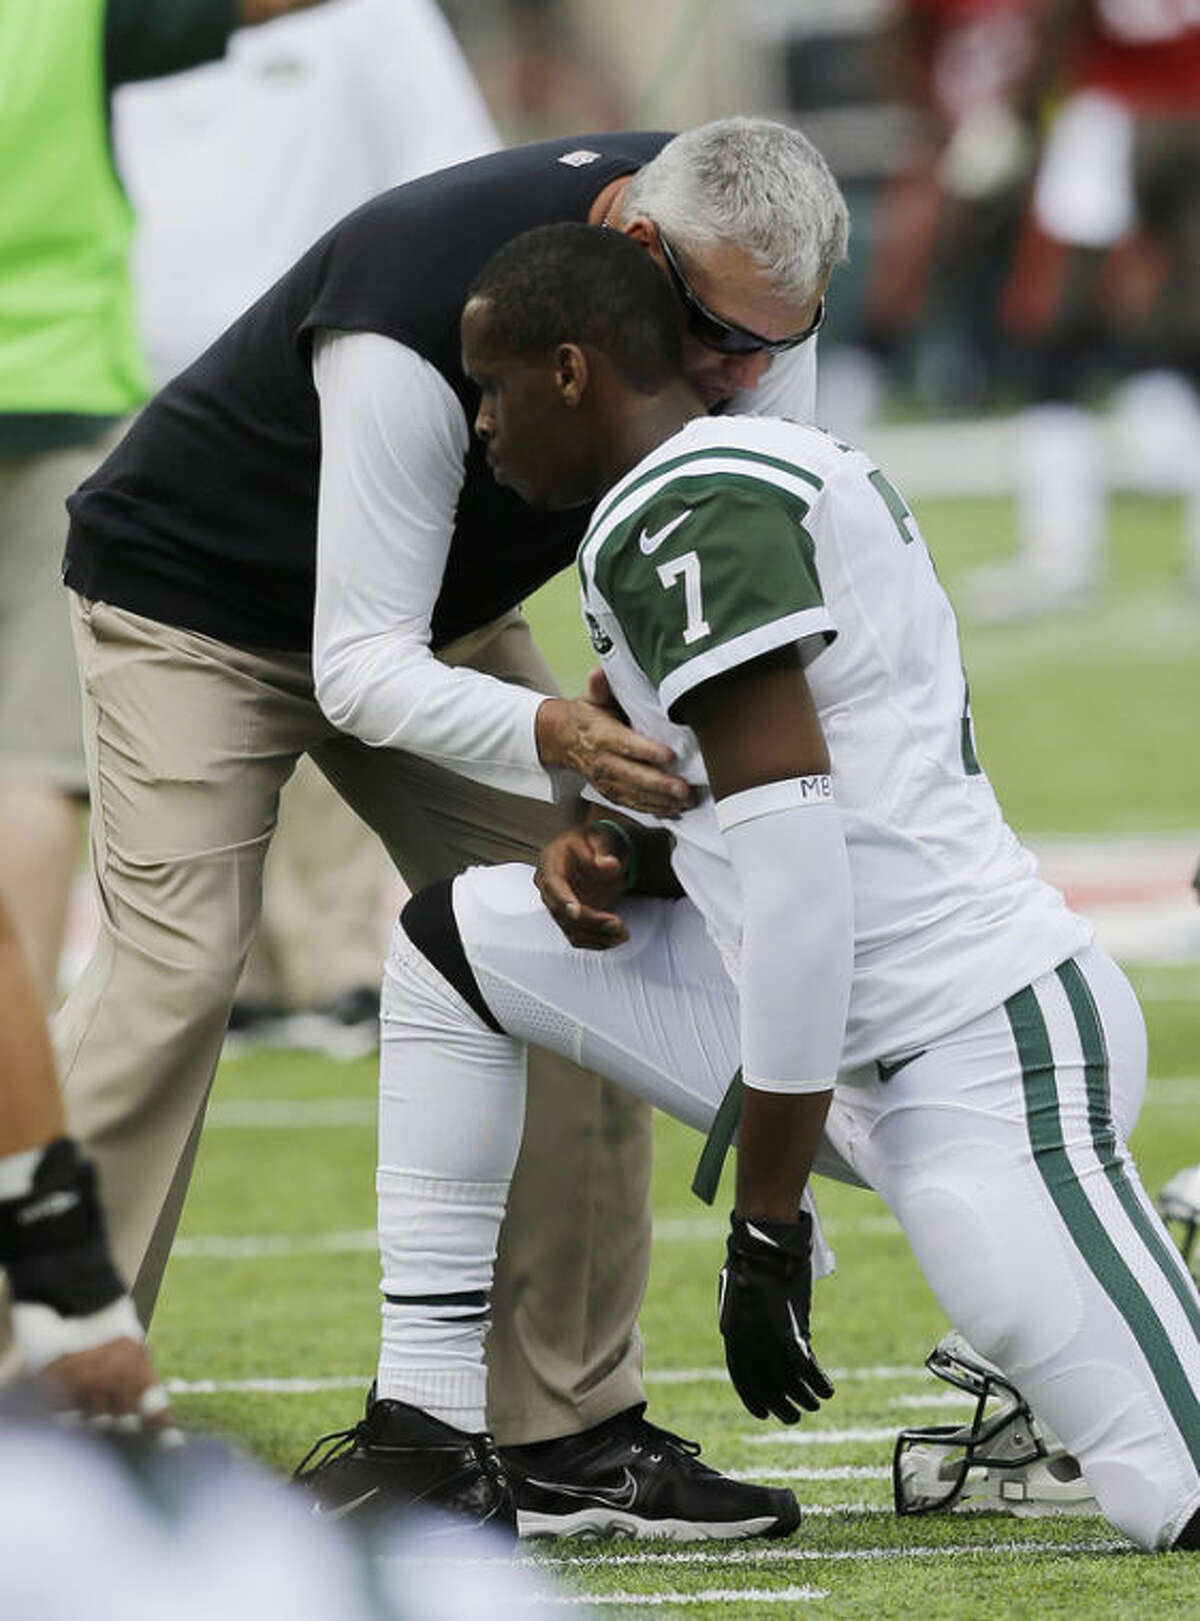 New York Jets coach Rex Ryan, center left, talks to quarterback Geno Smith before an NFL football game against the Tampa Bay Buccaneers, Sunday, Sept. 8, 2013, in East Rutherford, N.J. (AP Photo/Mel Evans)